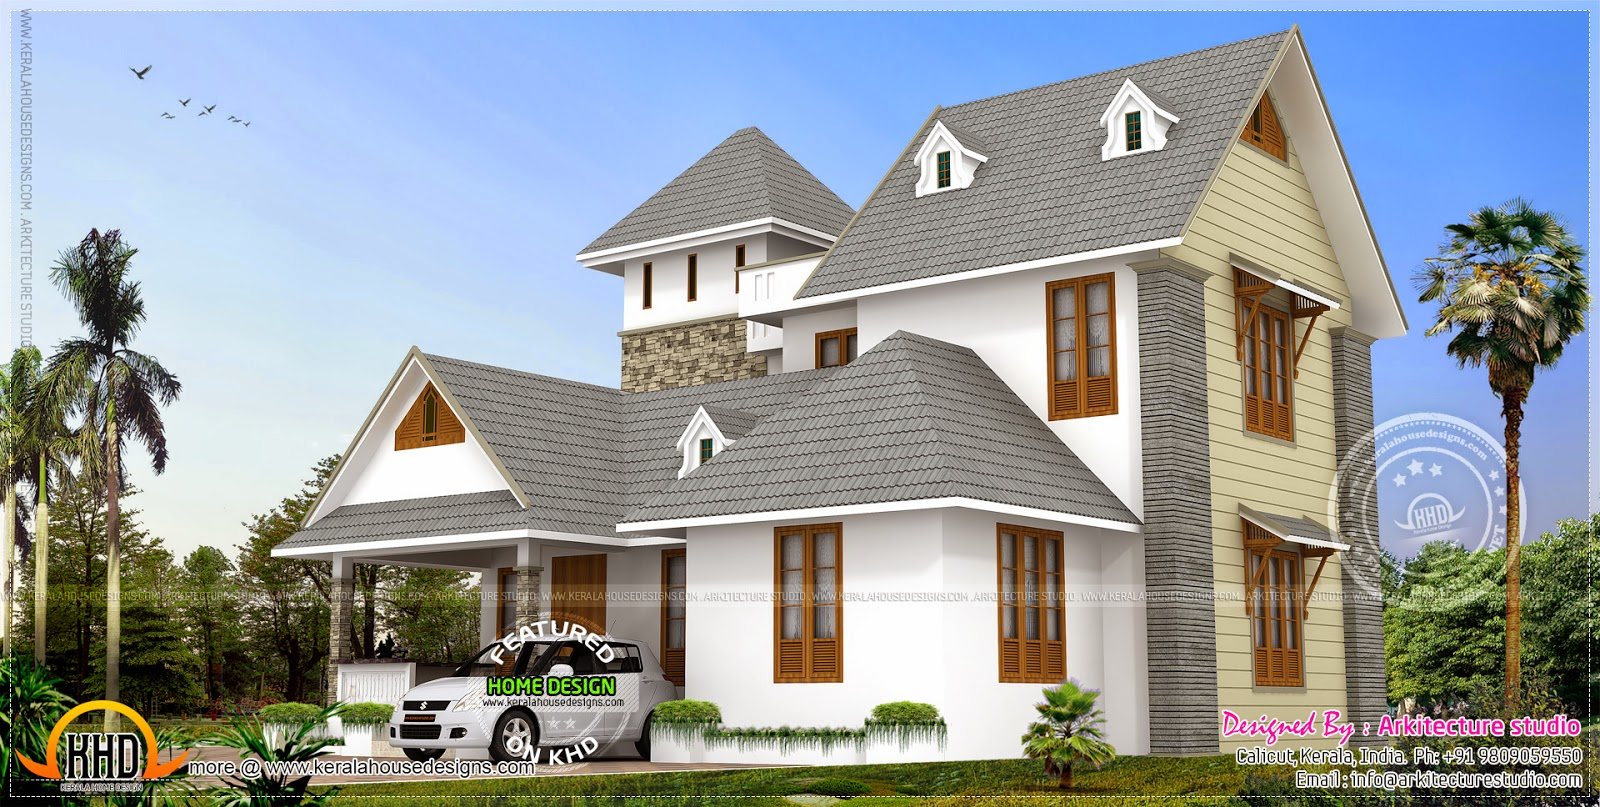 Architectural Design Home plan for Ghana and All Africa